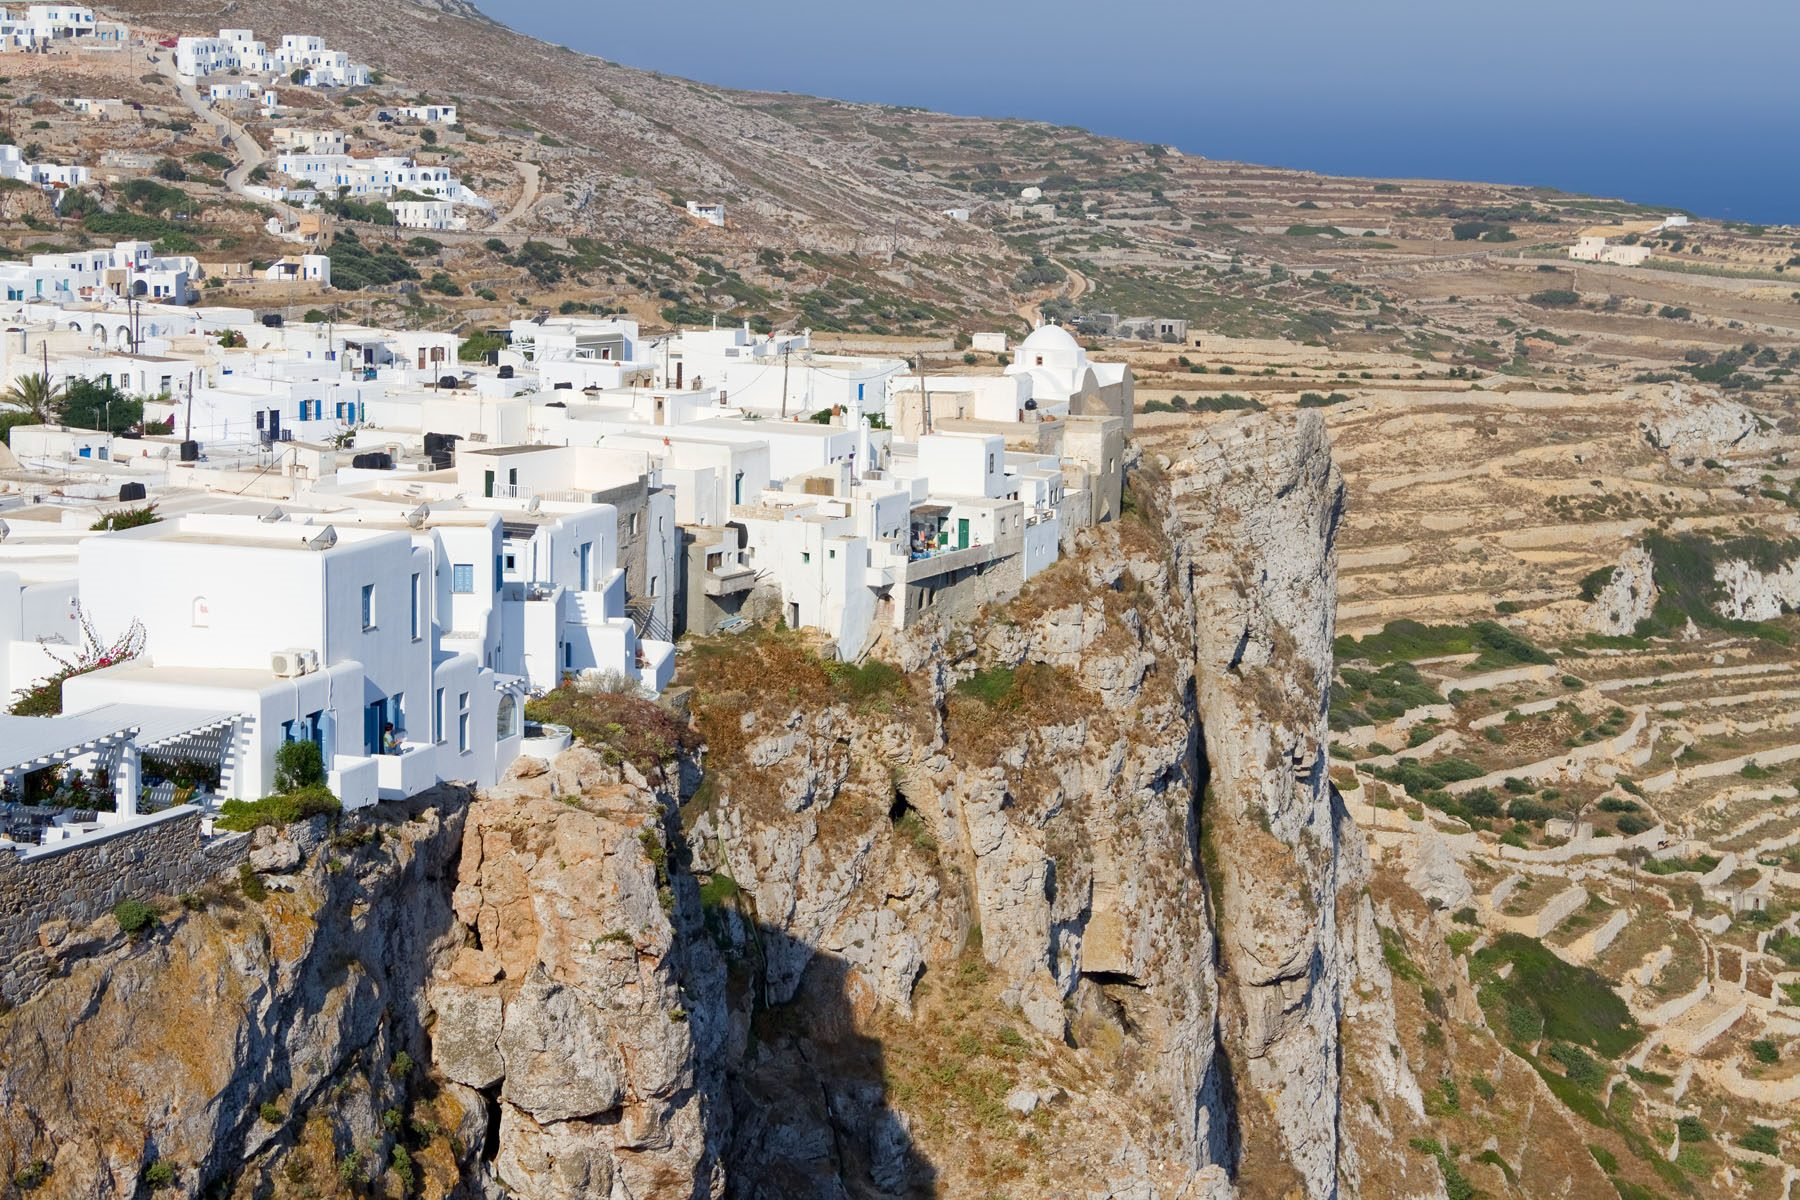 folegandros-near-the-edge-of-the-rock